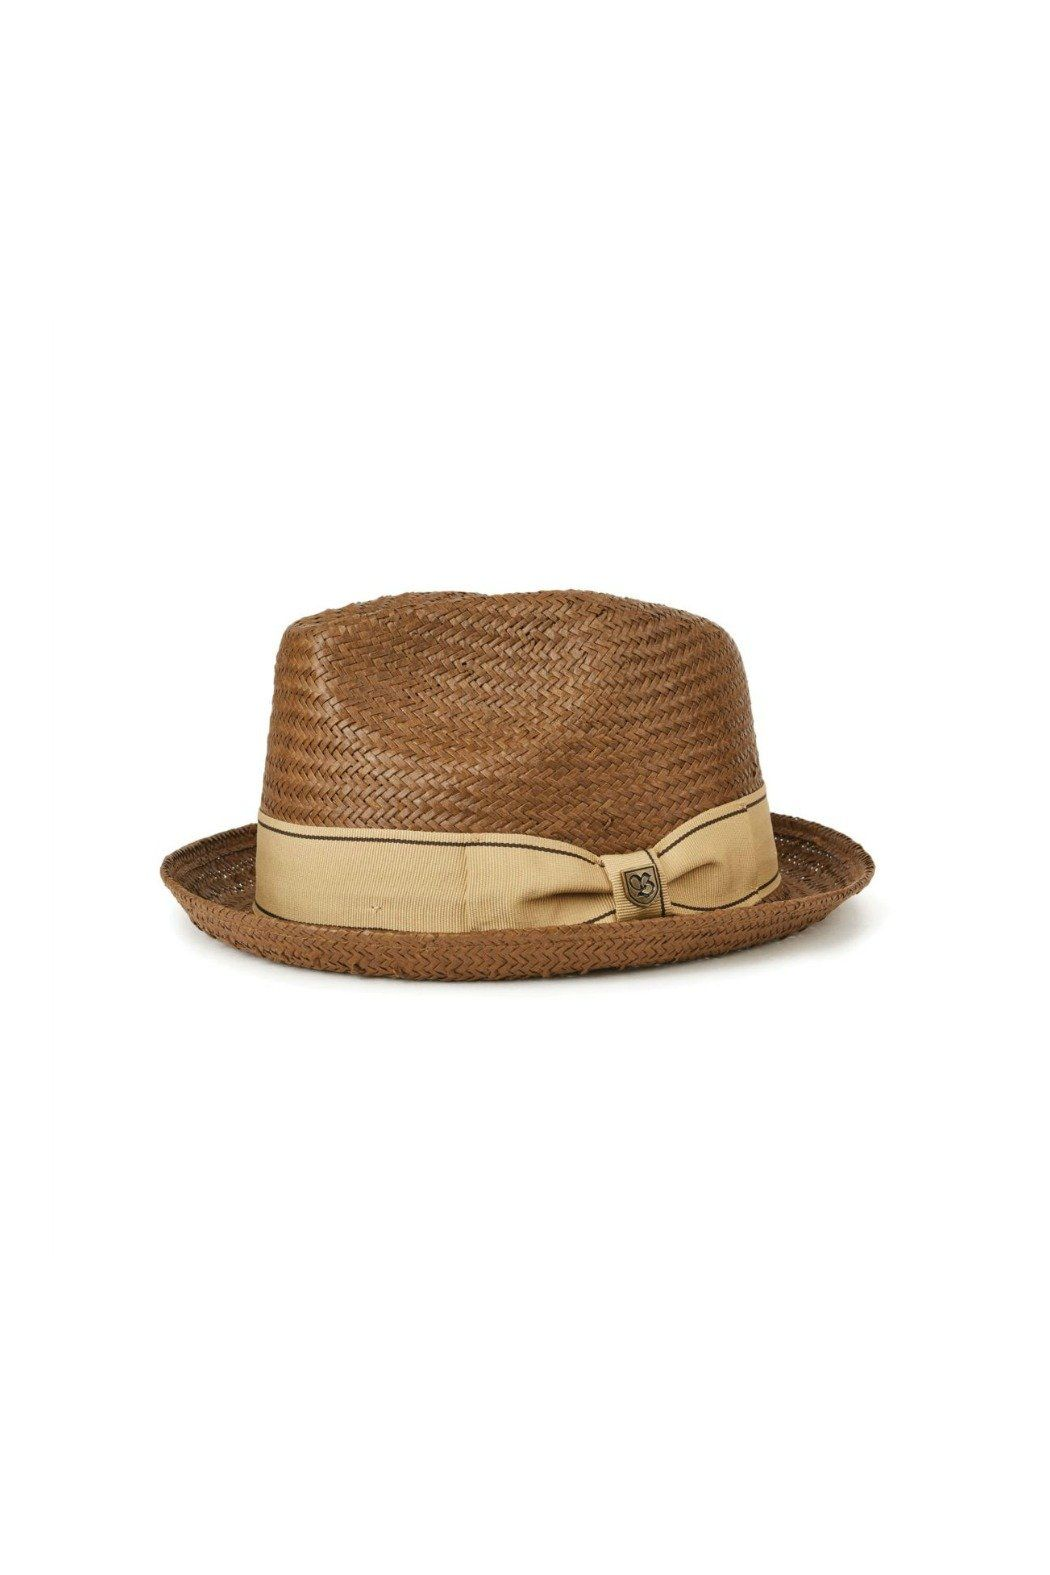 Brixton Castor Fedora in Brown Gold   Hat(tention)   Pinterest ... 99dd83edd4d